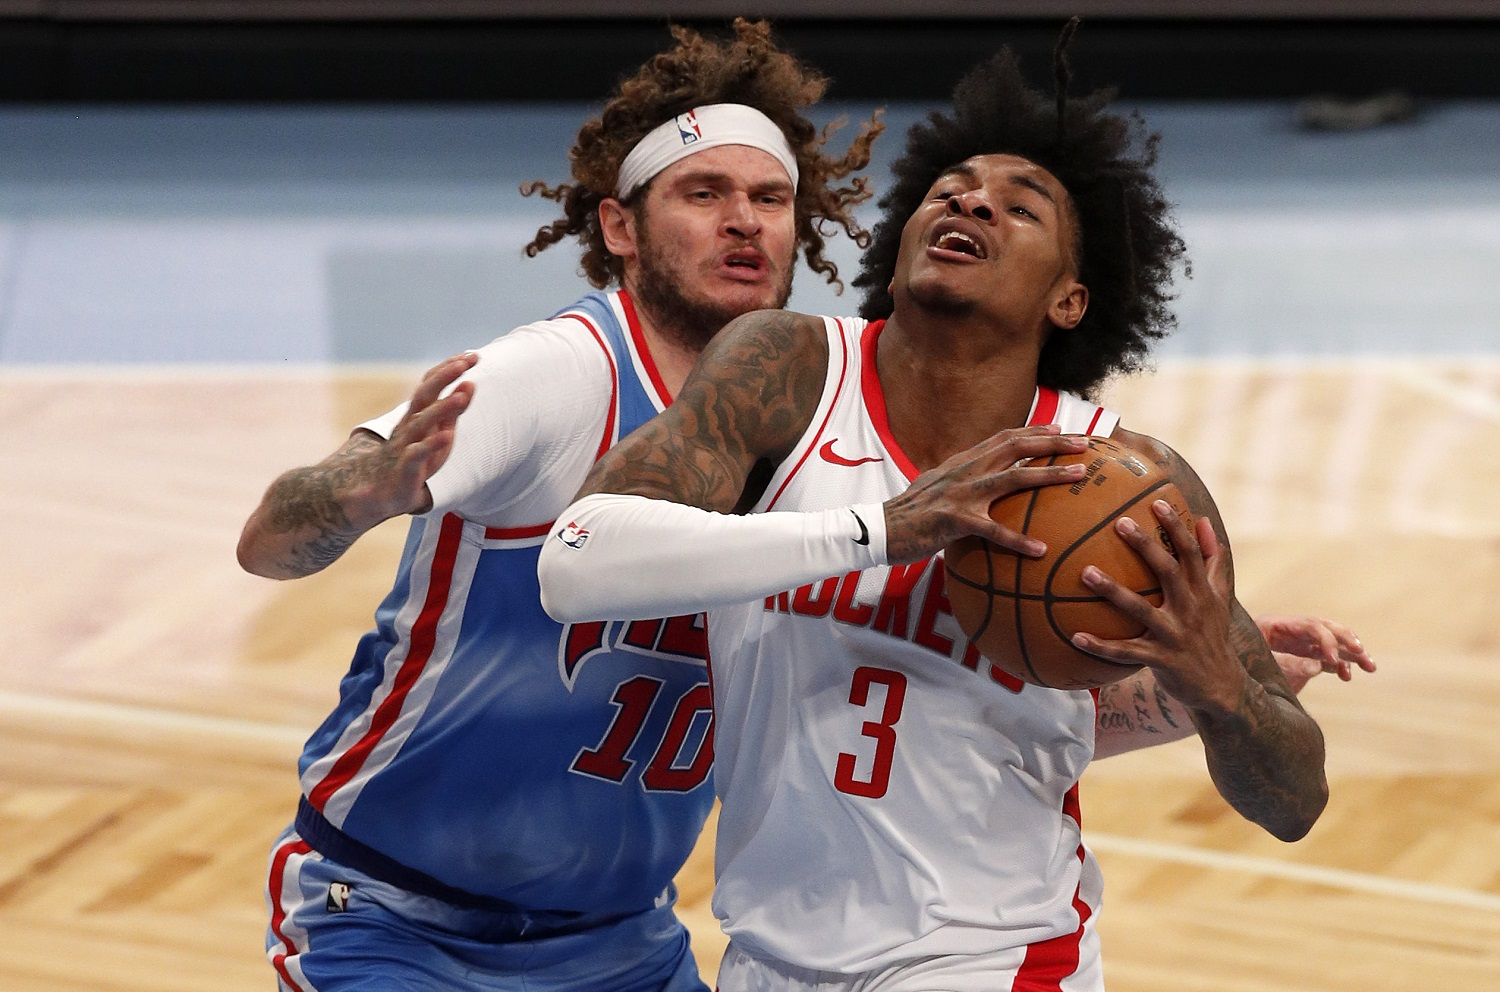 Kevin Porter Jr. of the Houston Rockets in action against Tyler Johnson of the Brooklyn Nets at Barclays Center on March 31, 2021 in New York City. | Jim McIsaac/Getty Images